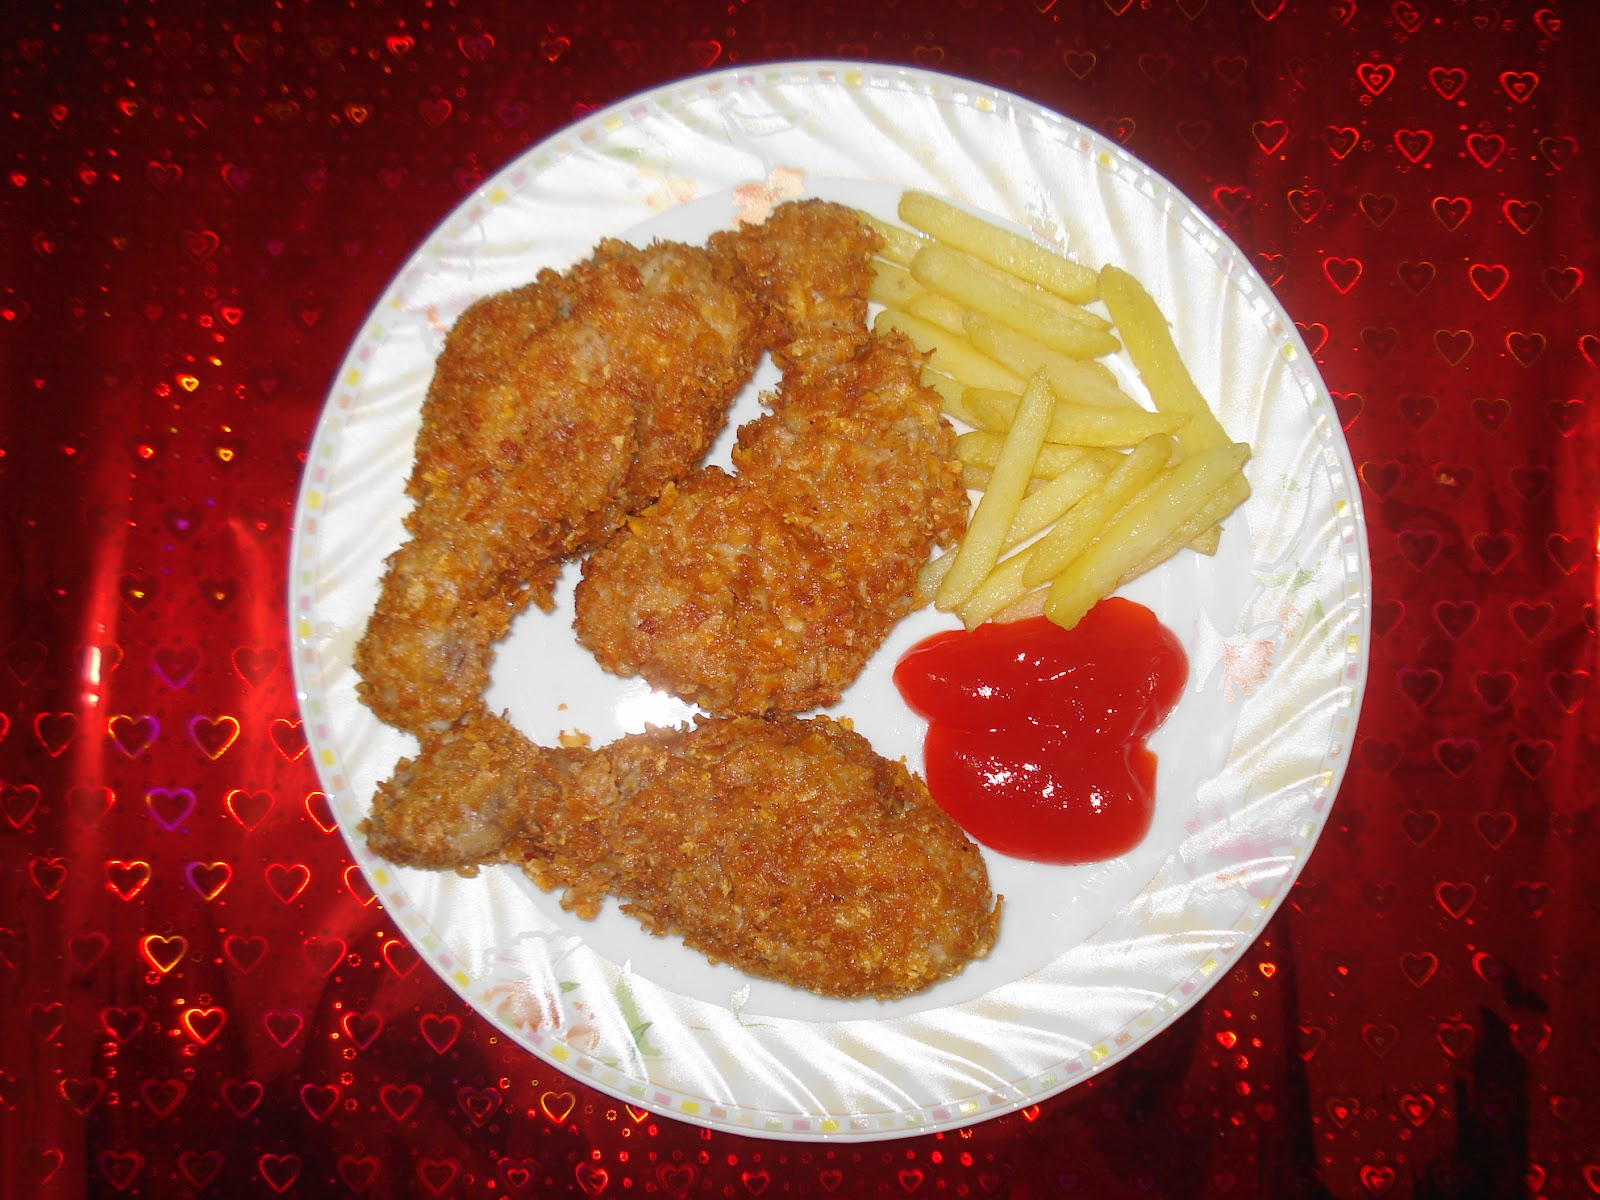 Cuisine of karachi kfc chicken at home corn flakes are used to give texture like kfc chicken when using skinless chicken pieces i used skinless chicken in my recipe forumfinder Image collections